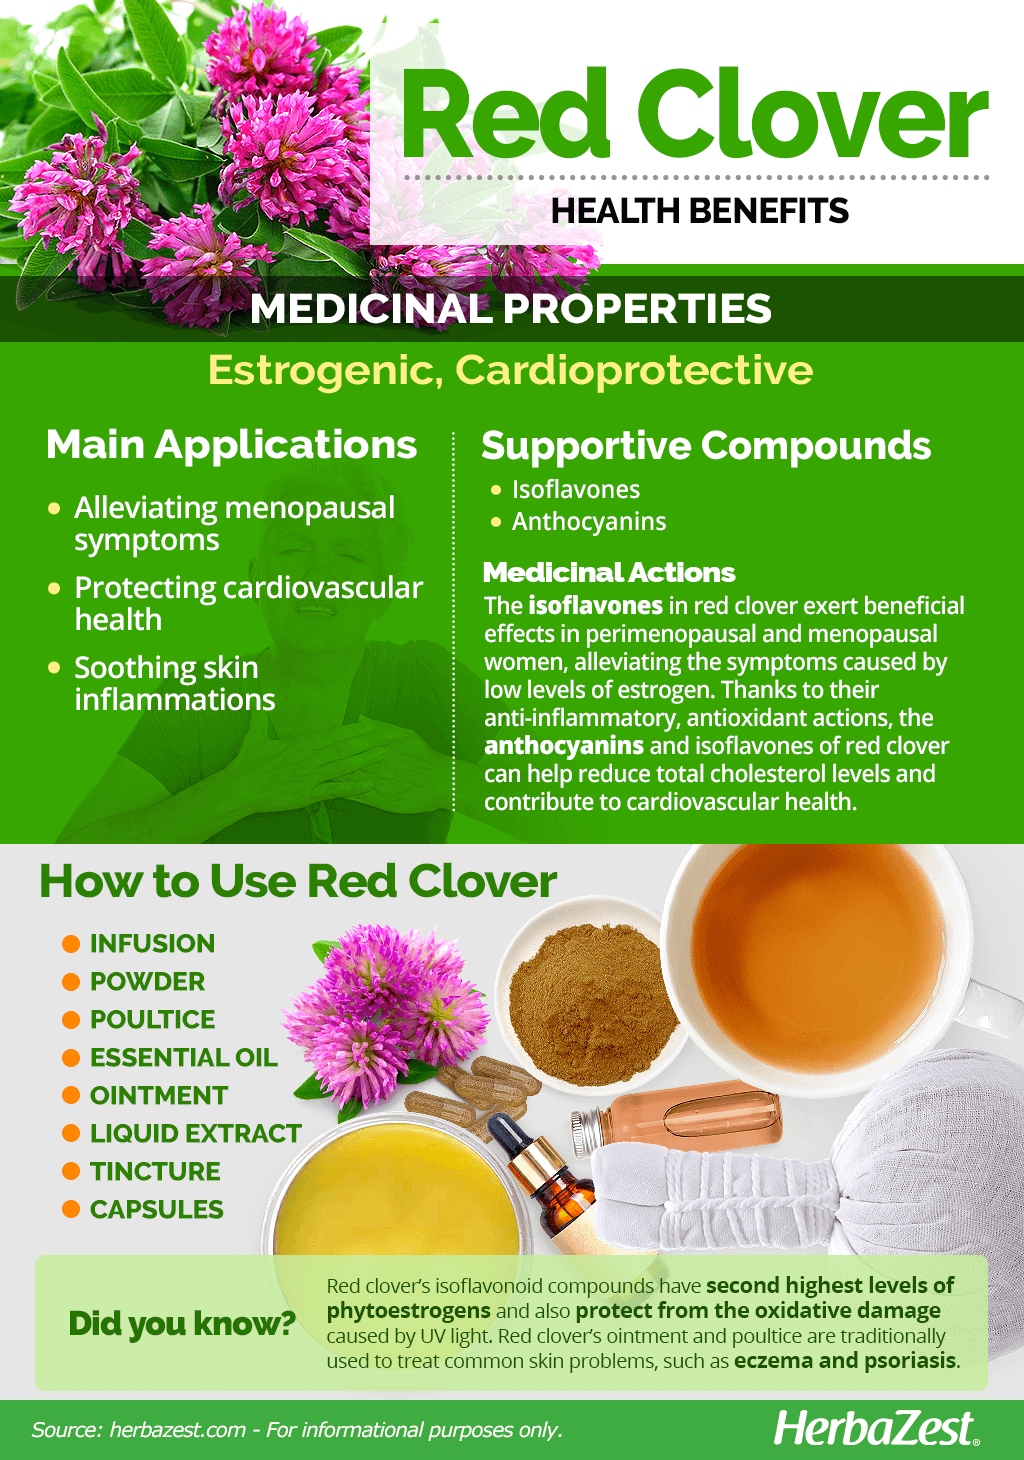 All About Red Clover